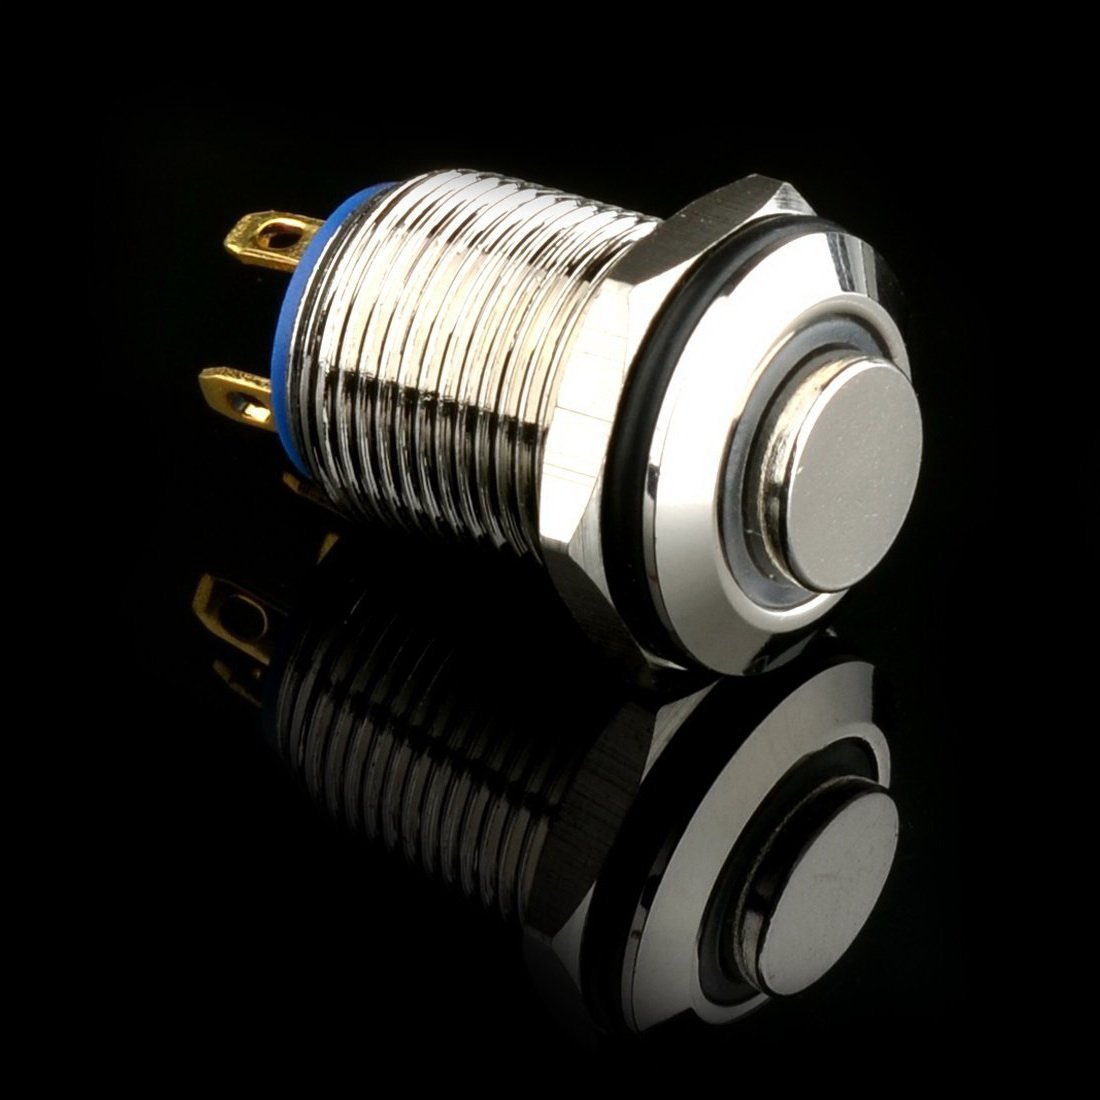 Flyshop 12mm 1//2 Momentary Push Button Switch High Round Waterproof Stainless Steel 4 Pins 12V Yellow LED 3A